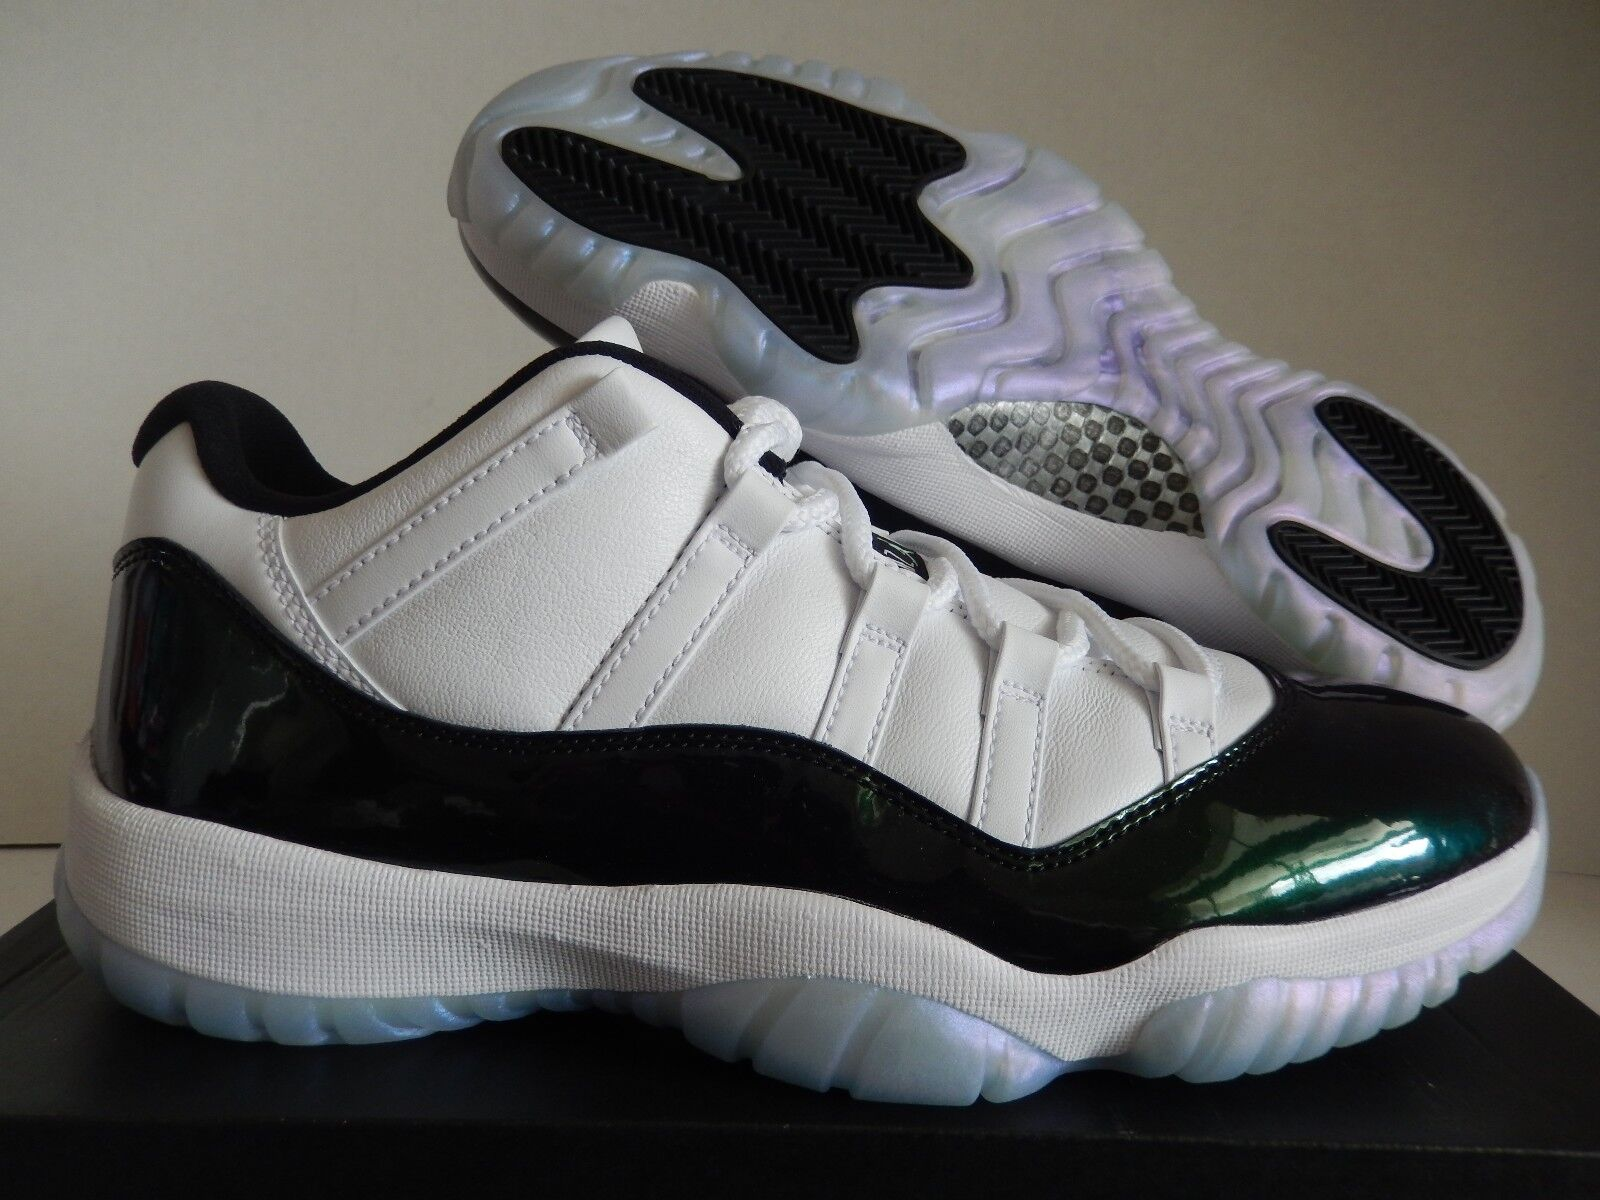 NIKE AIR -EMERALD JORDAN 11 RETRO LOW blanc - Noir -EMERALD AIR